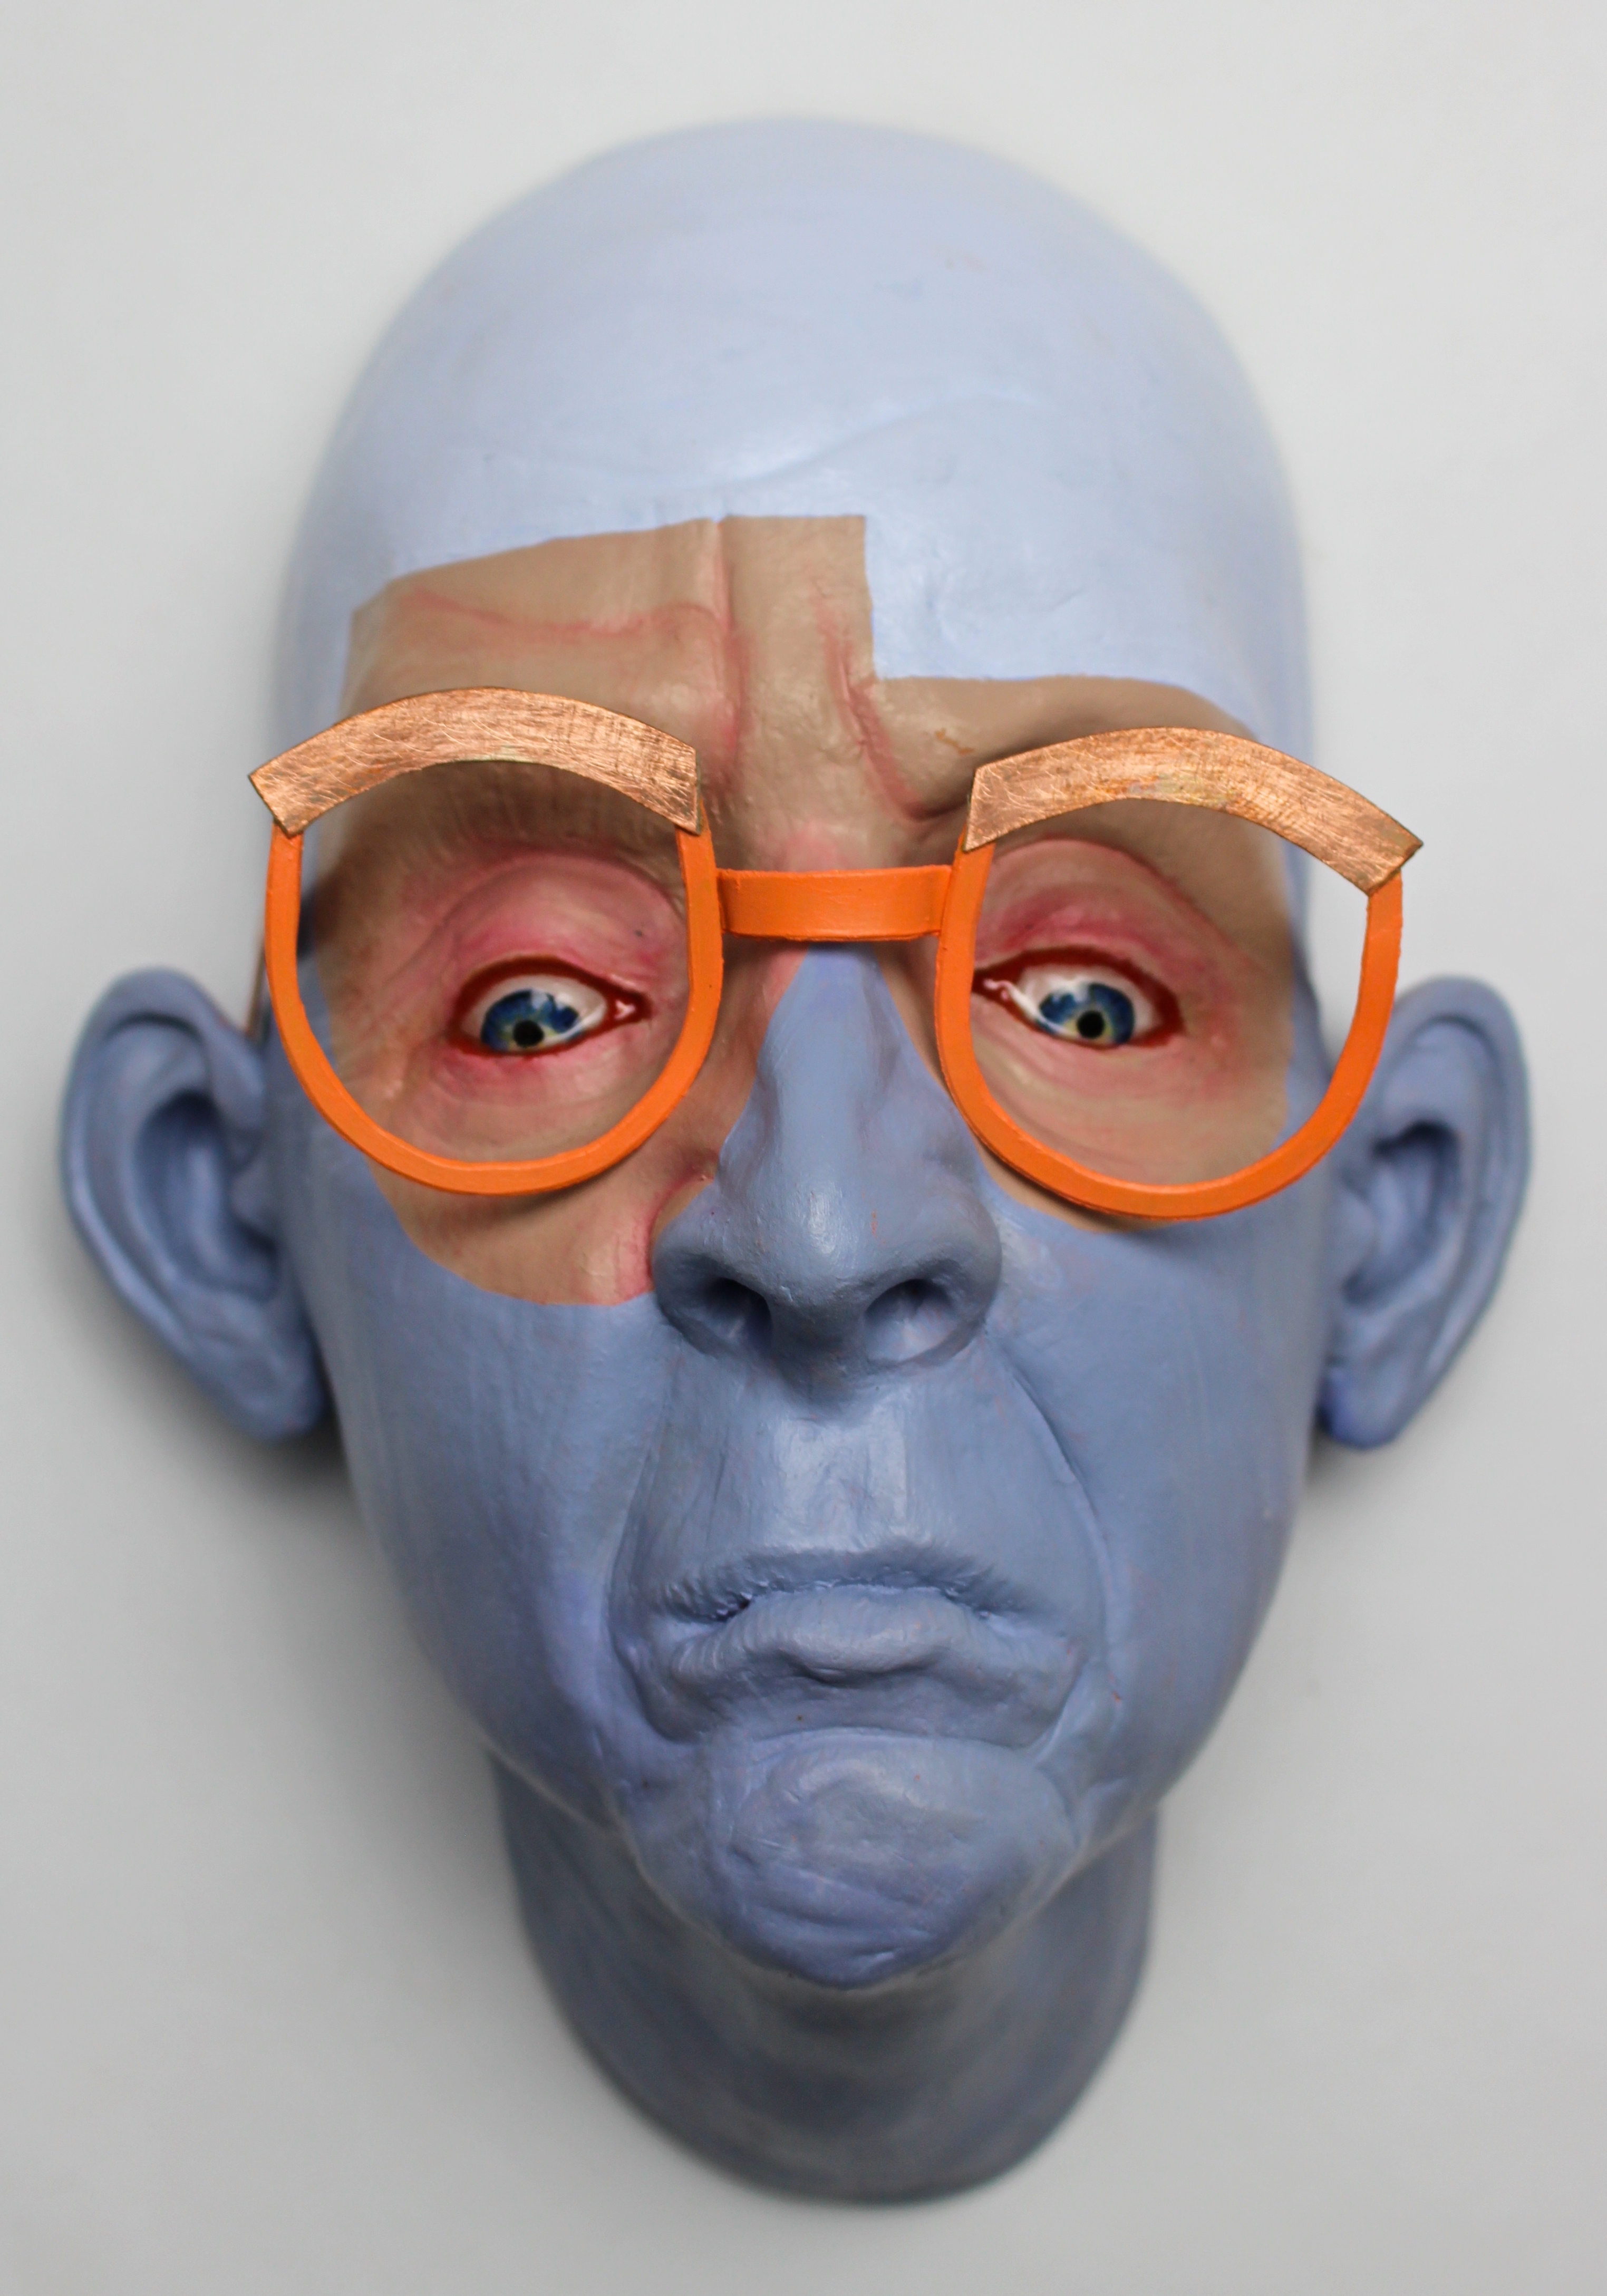 Luke Halling self-portrait mask bald and with orange glasses